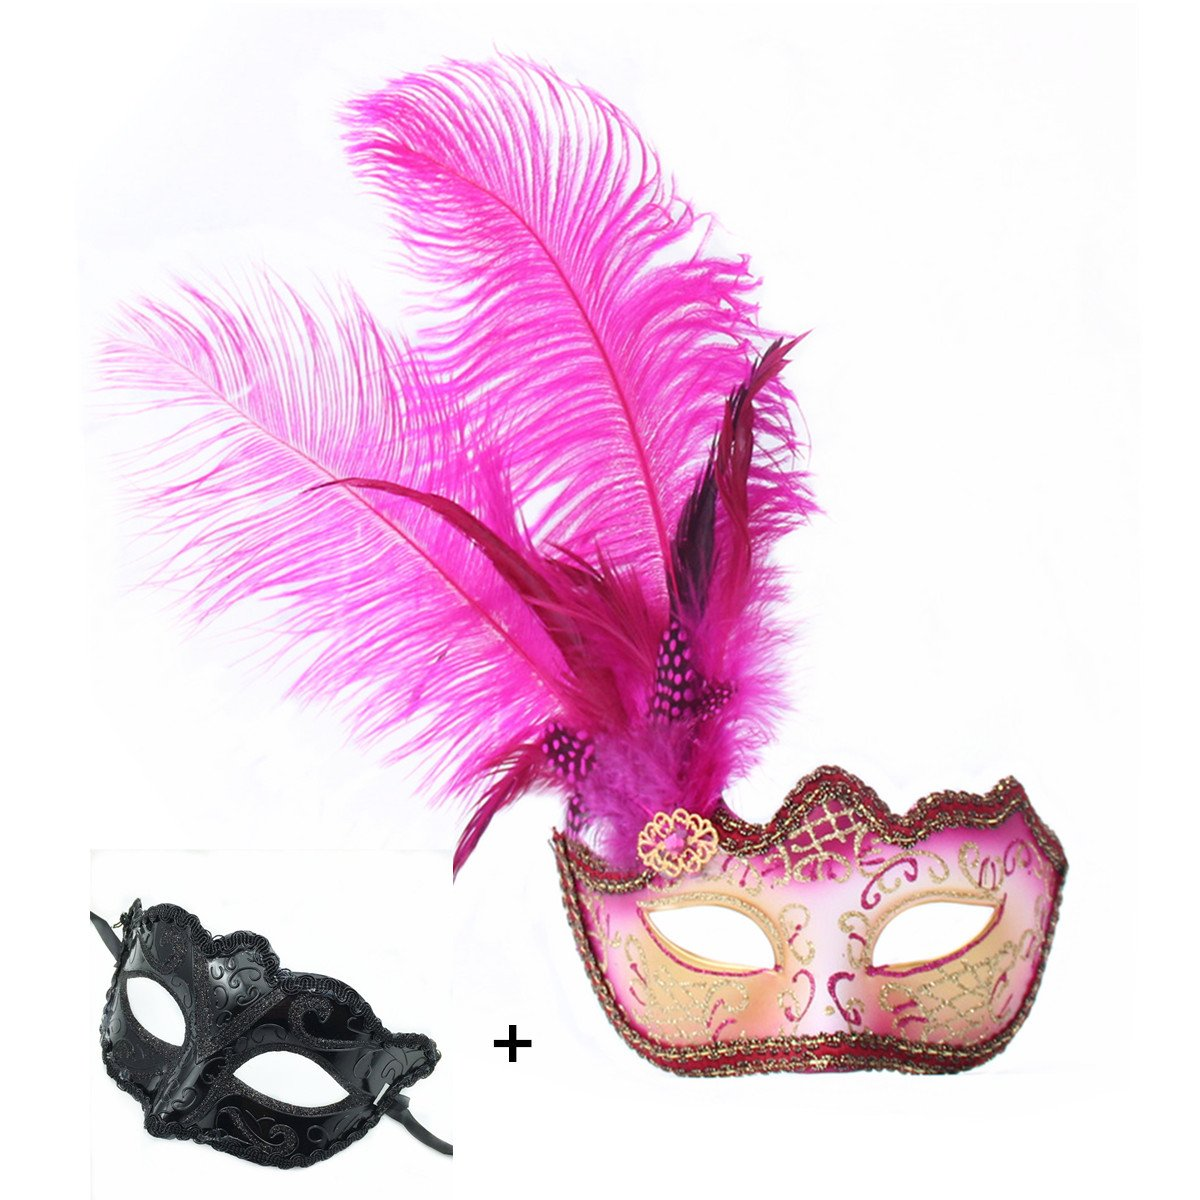 Haojing Masquerade Carnival Mardi Gras Costume Venetian Halloween Party Mask with Feather Flower and Gift(Fuschia Feathers+G)